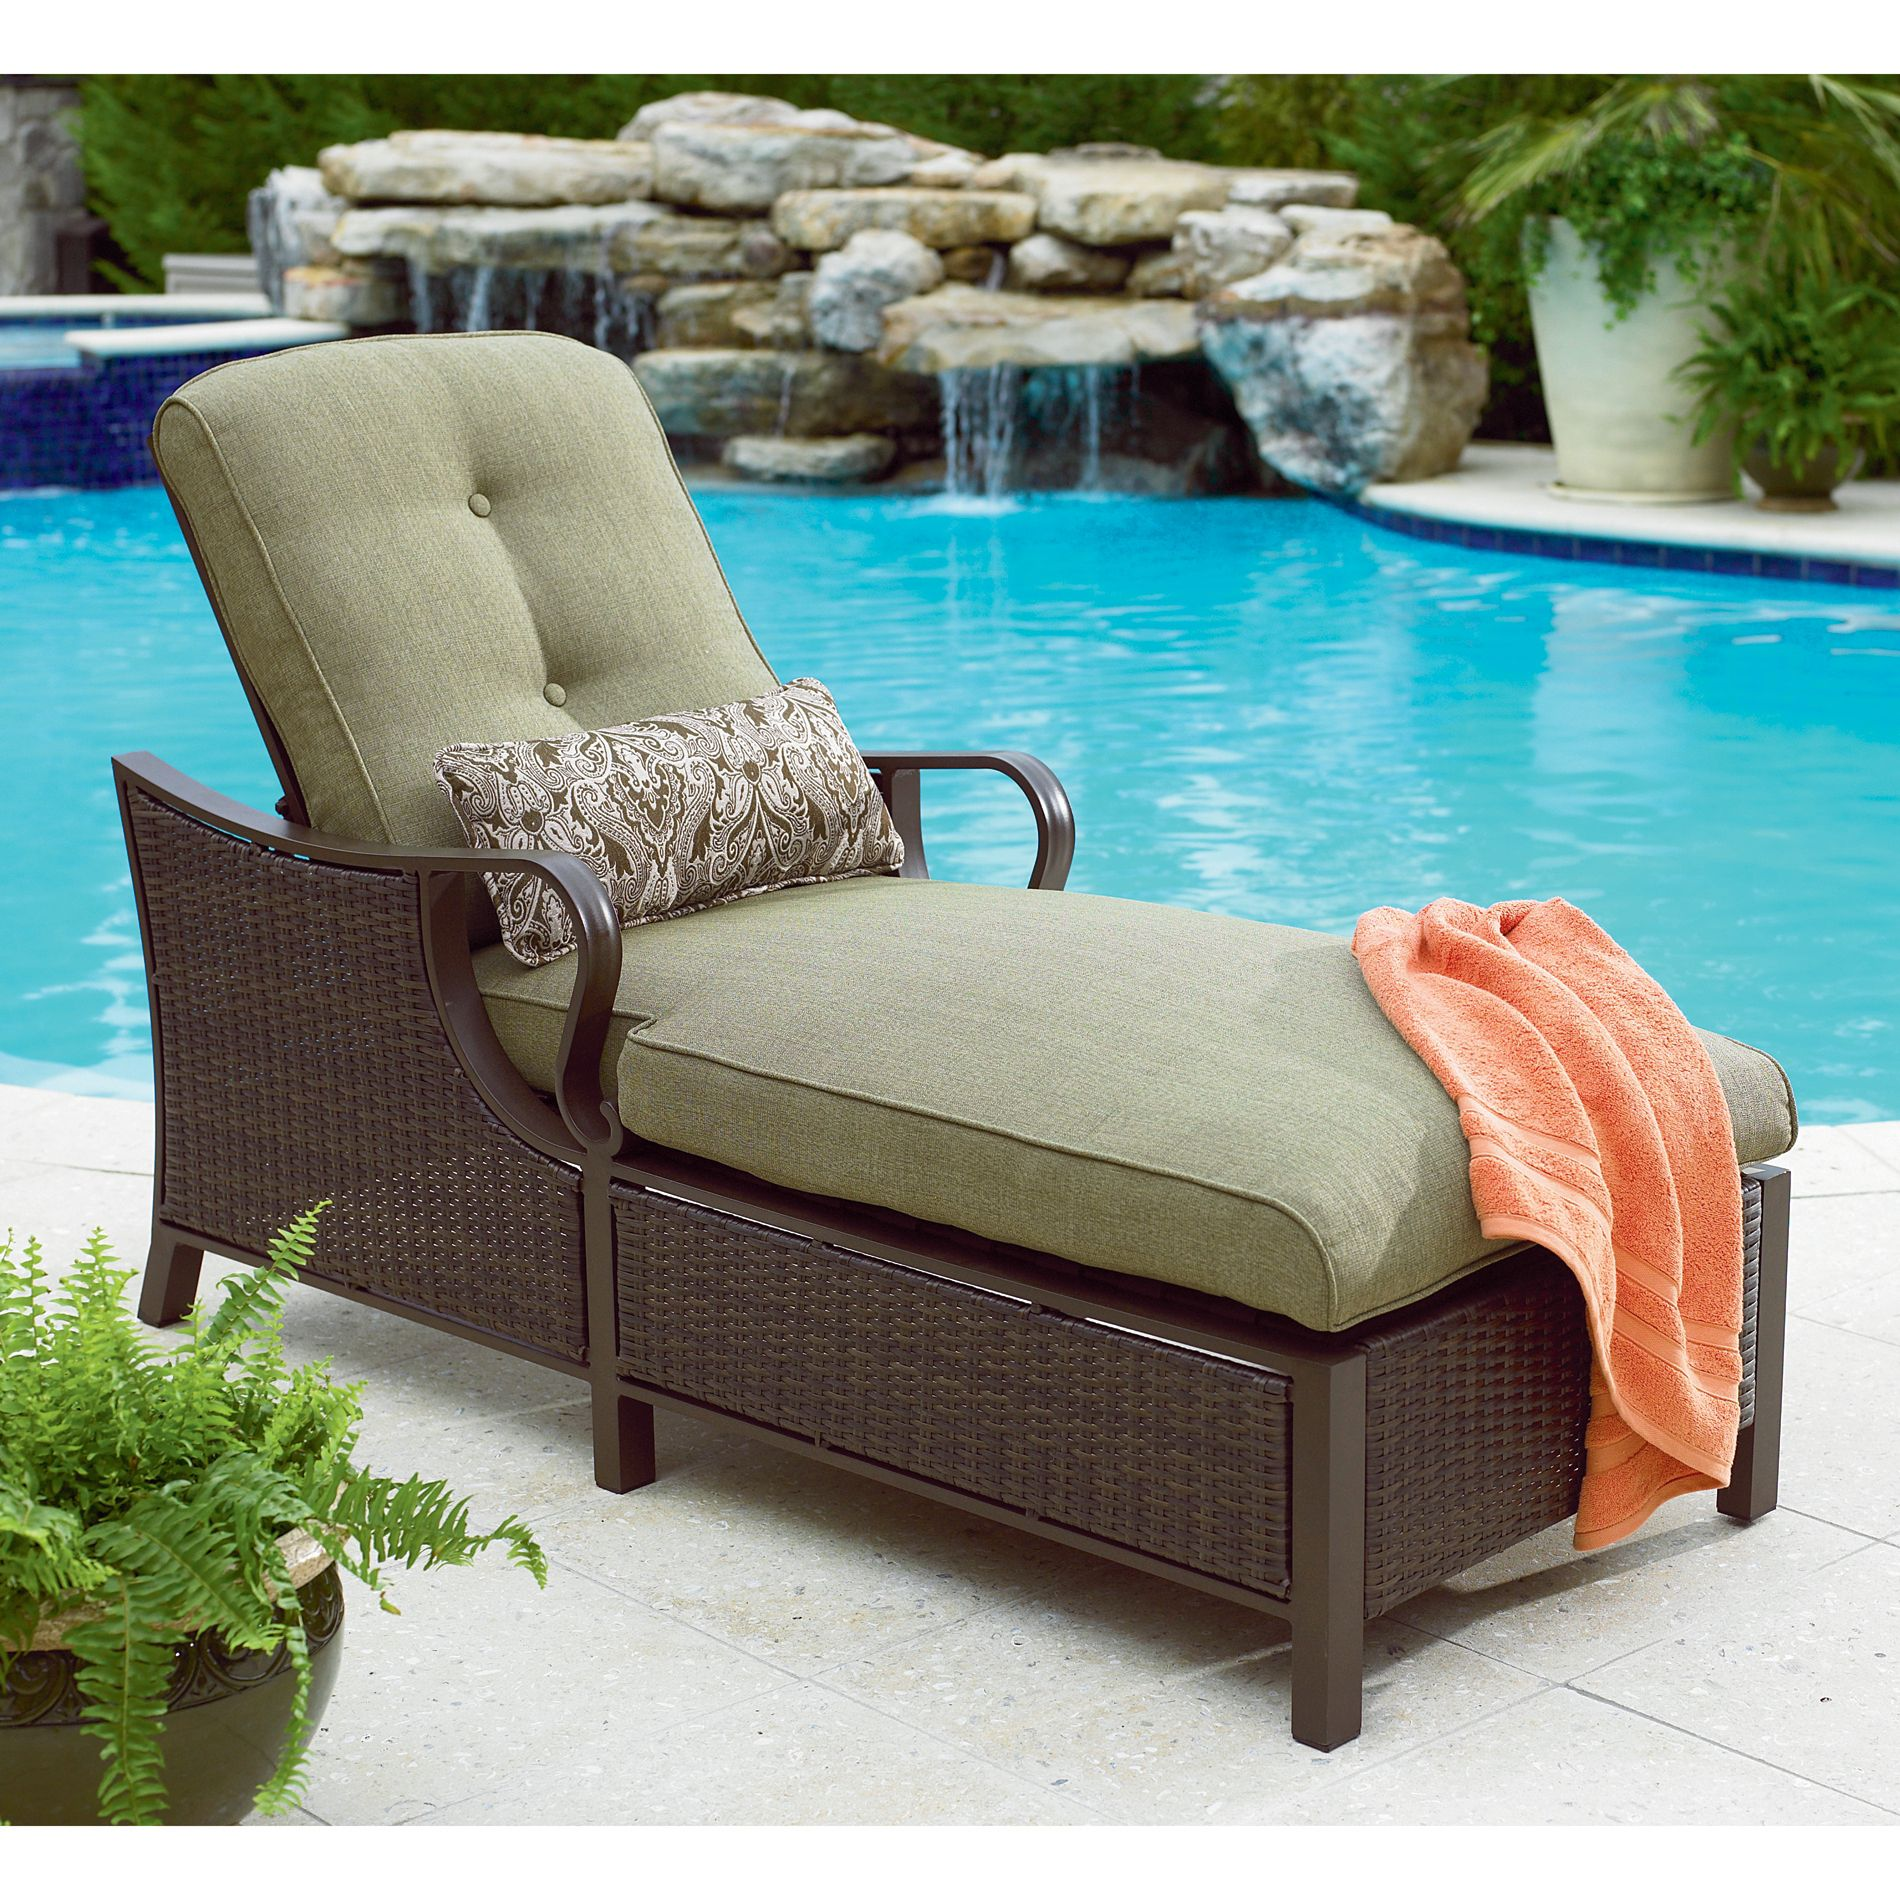 sears lounge chairs babybjorn potty chair green la z boy wicker chaise great outdoor ideas at